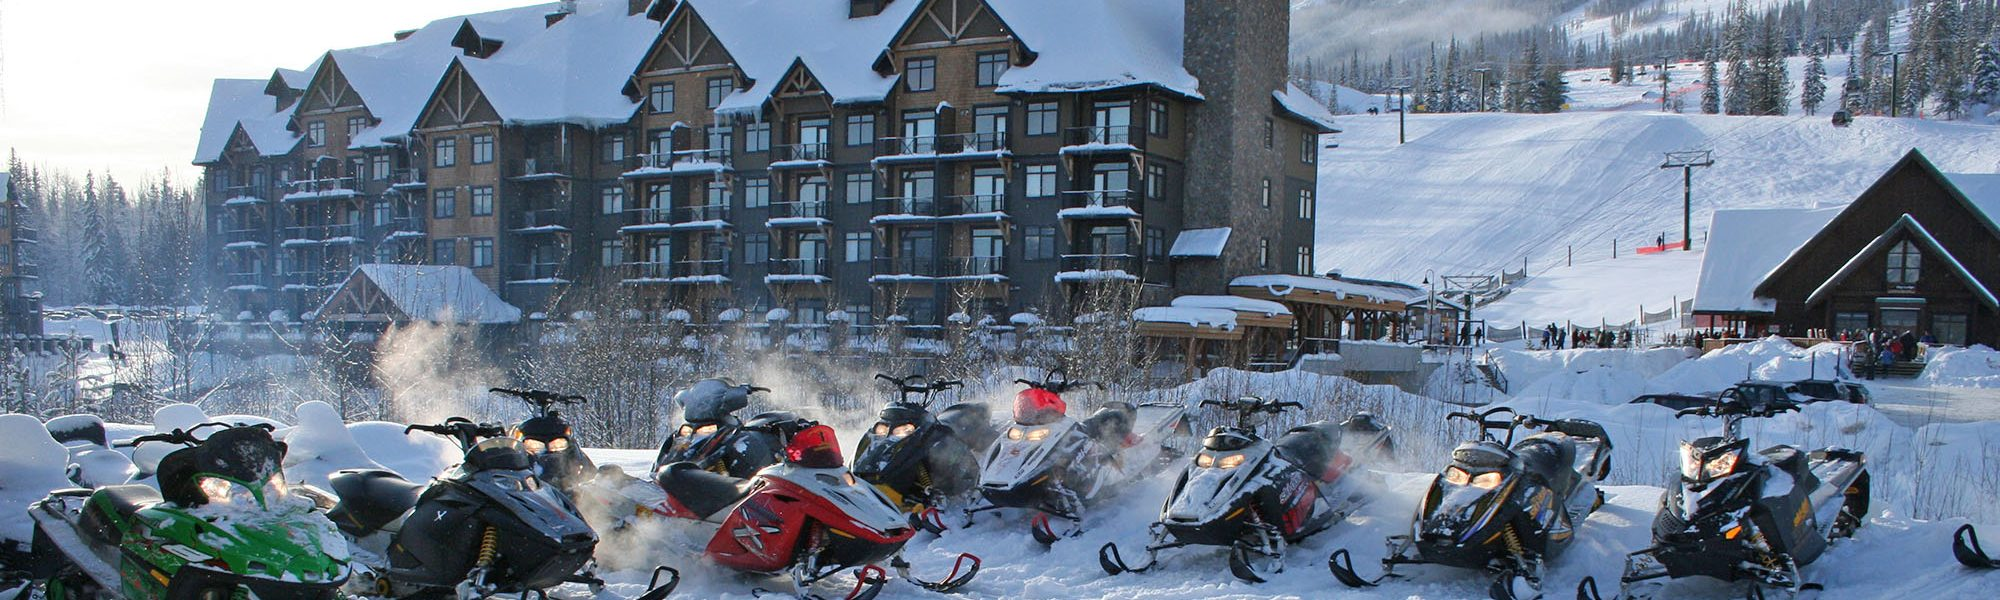 snowmobile tours at kicking horse resort